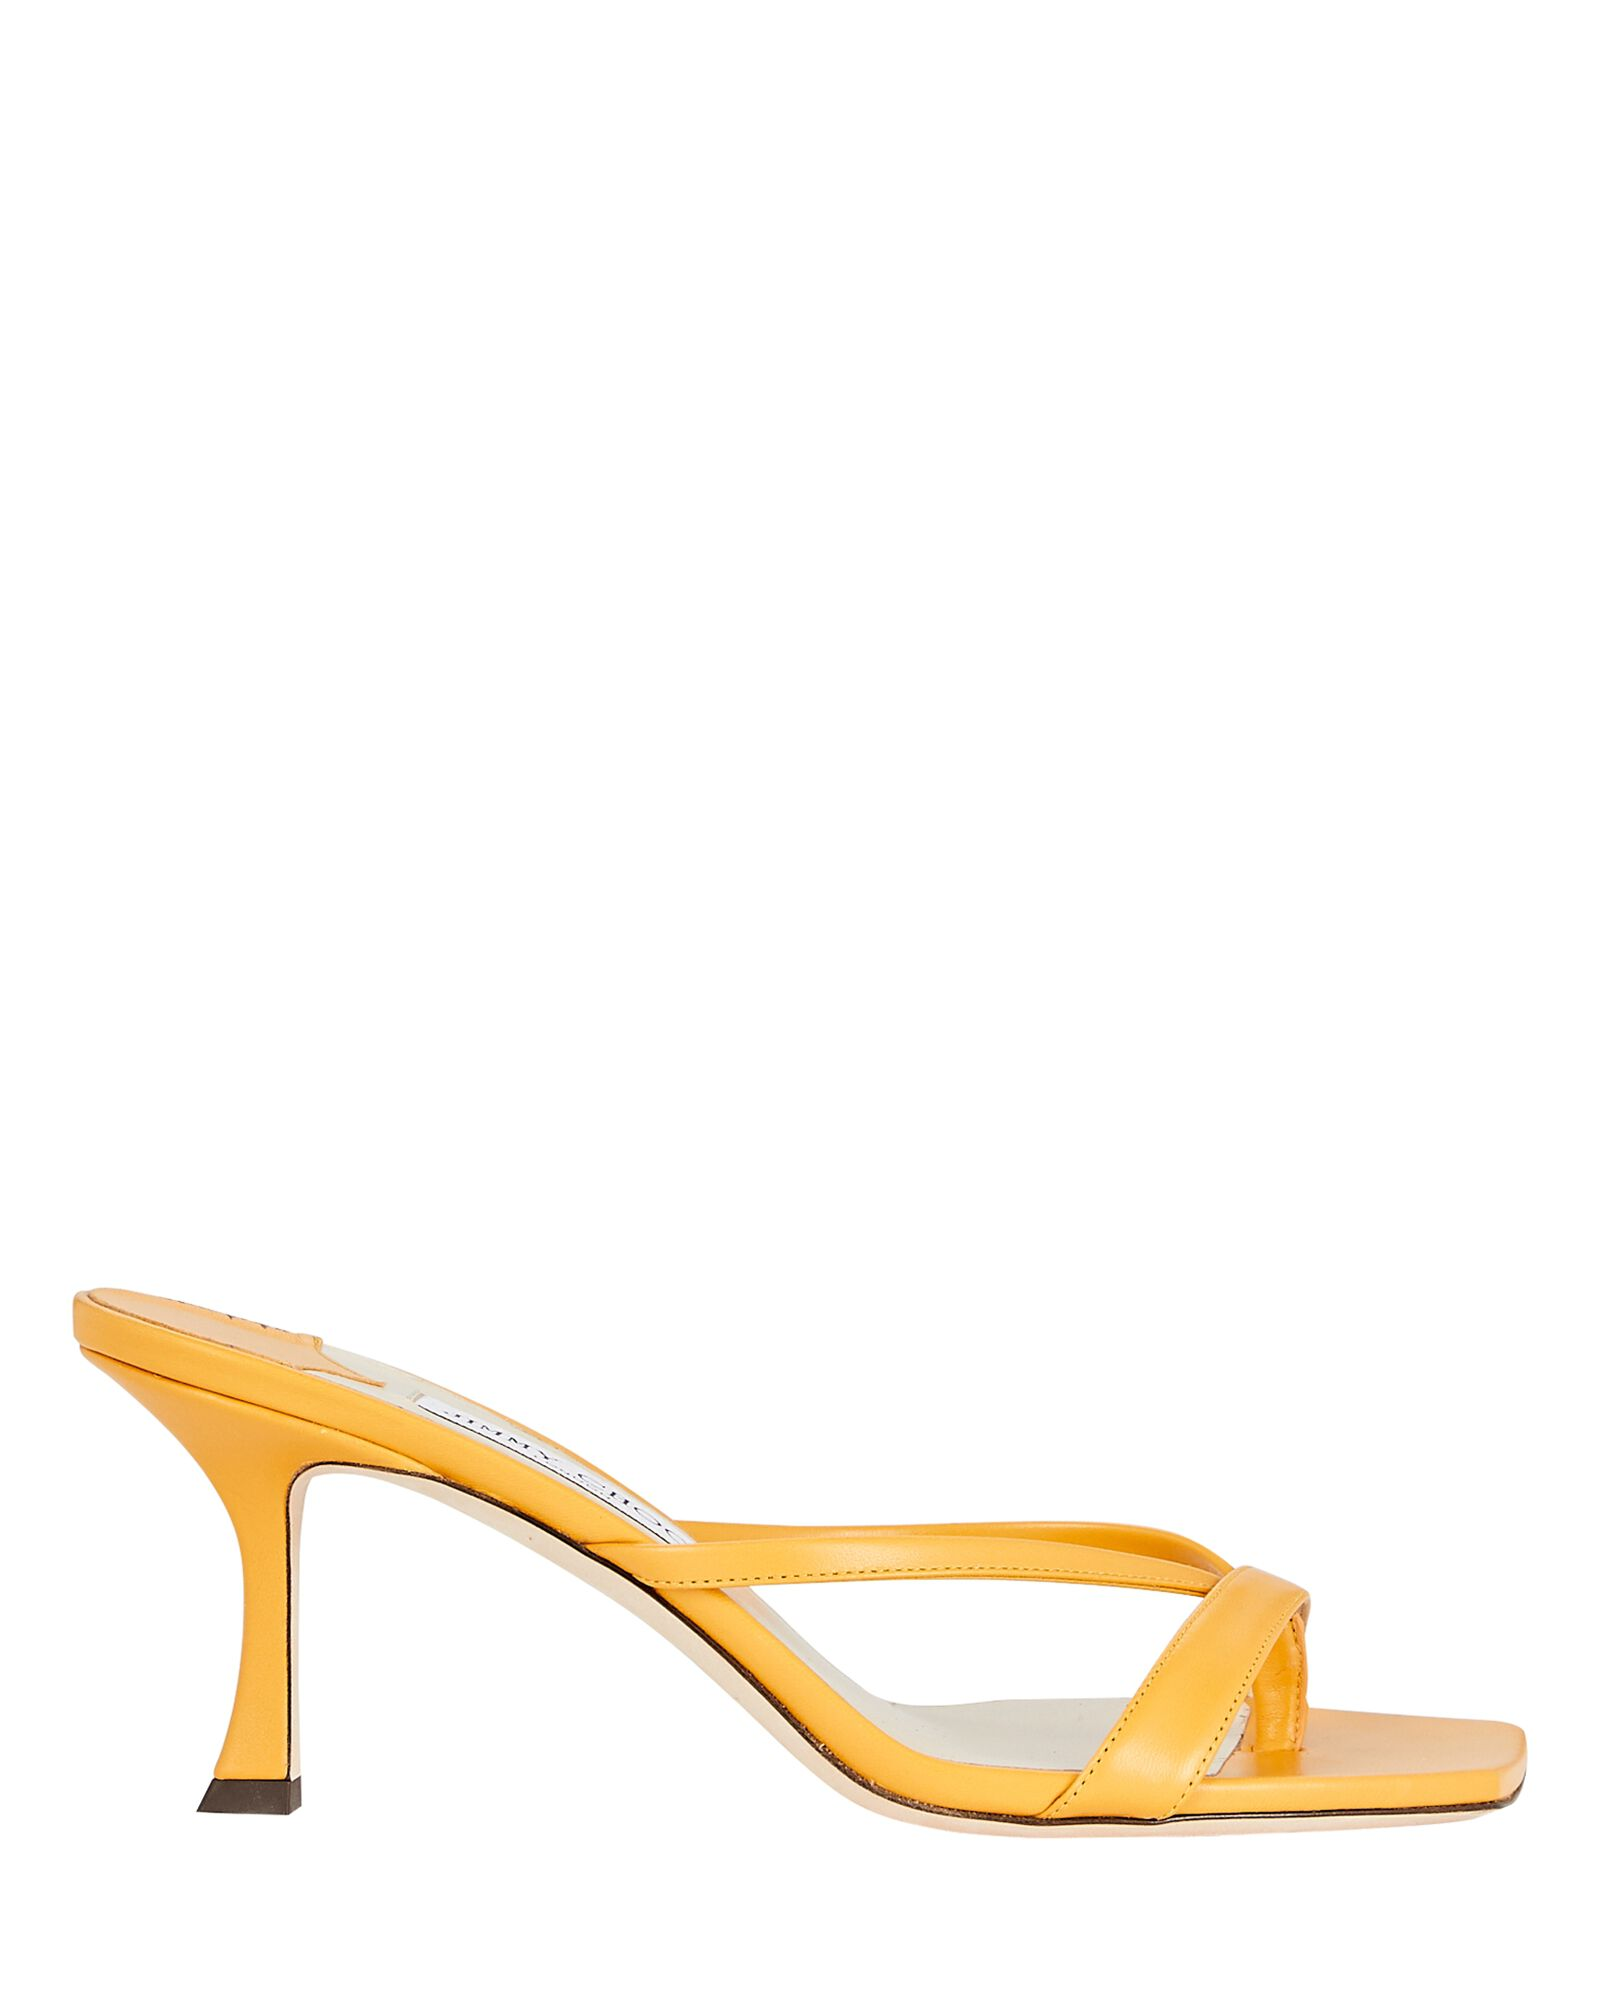 Maelie 70 Leather Thong Sandals, YELLOW, hi-res